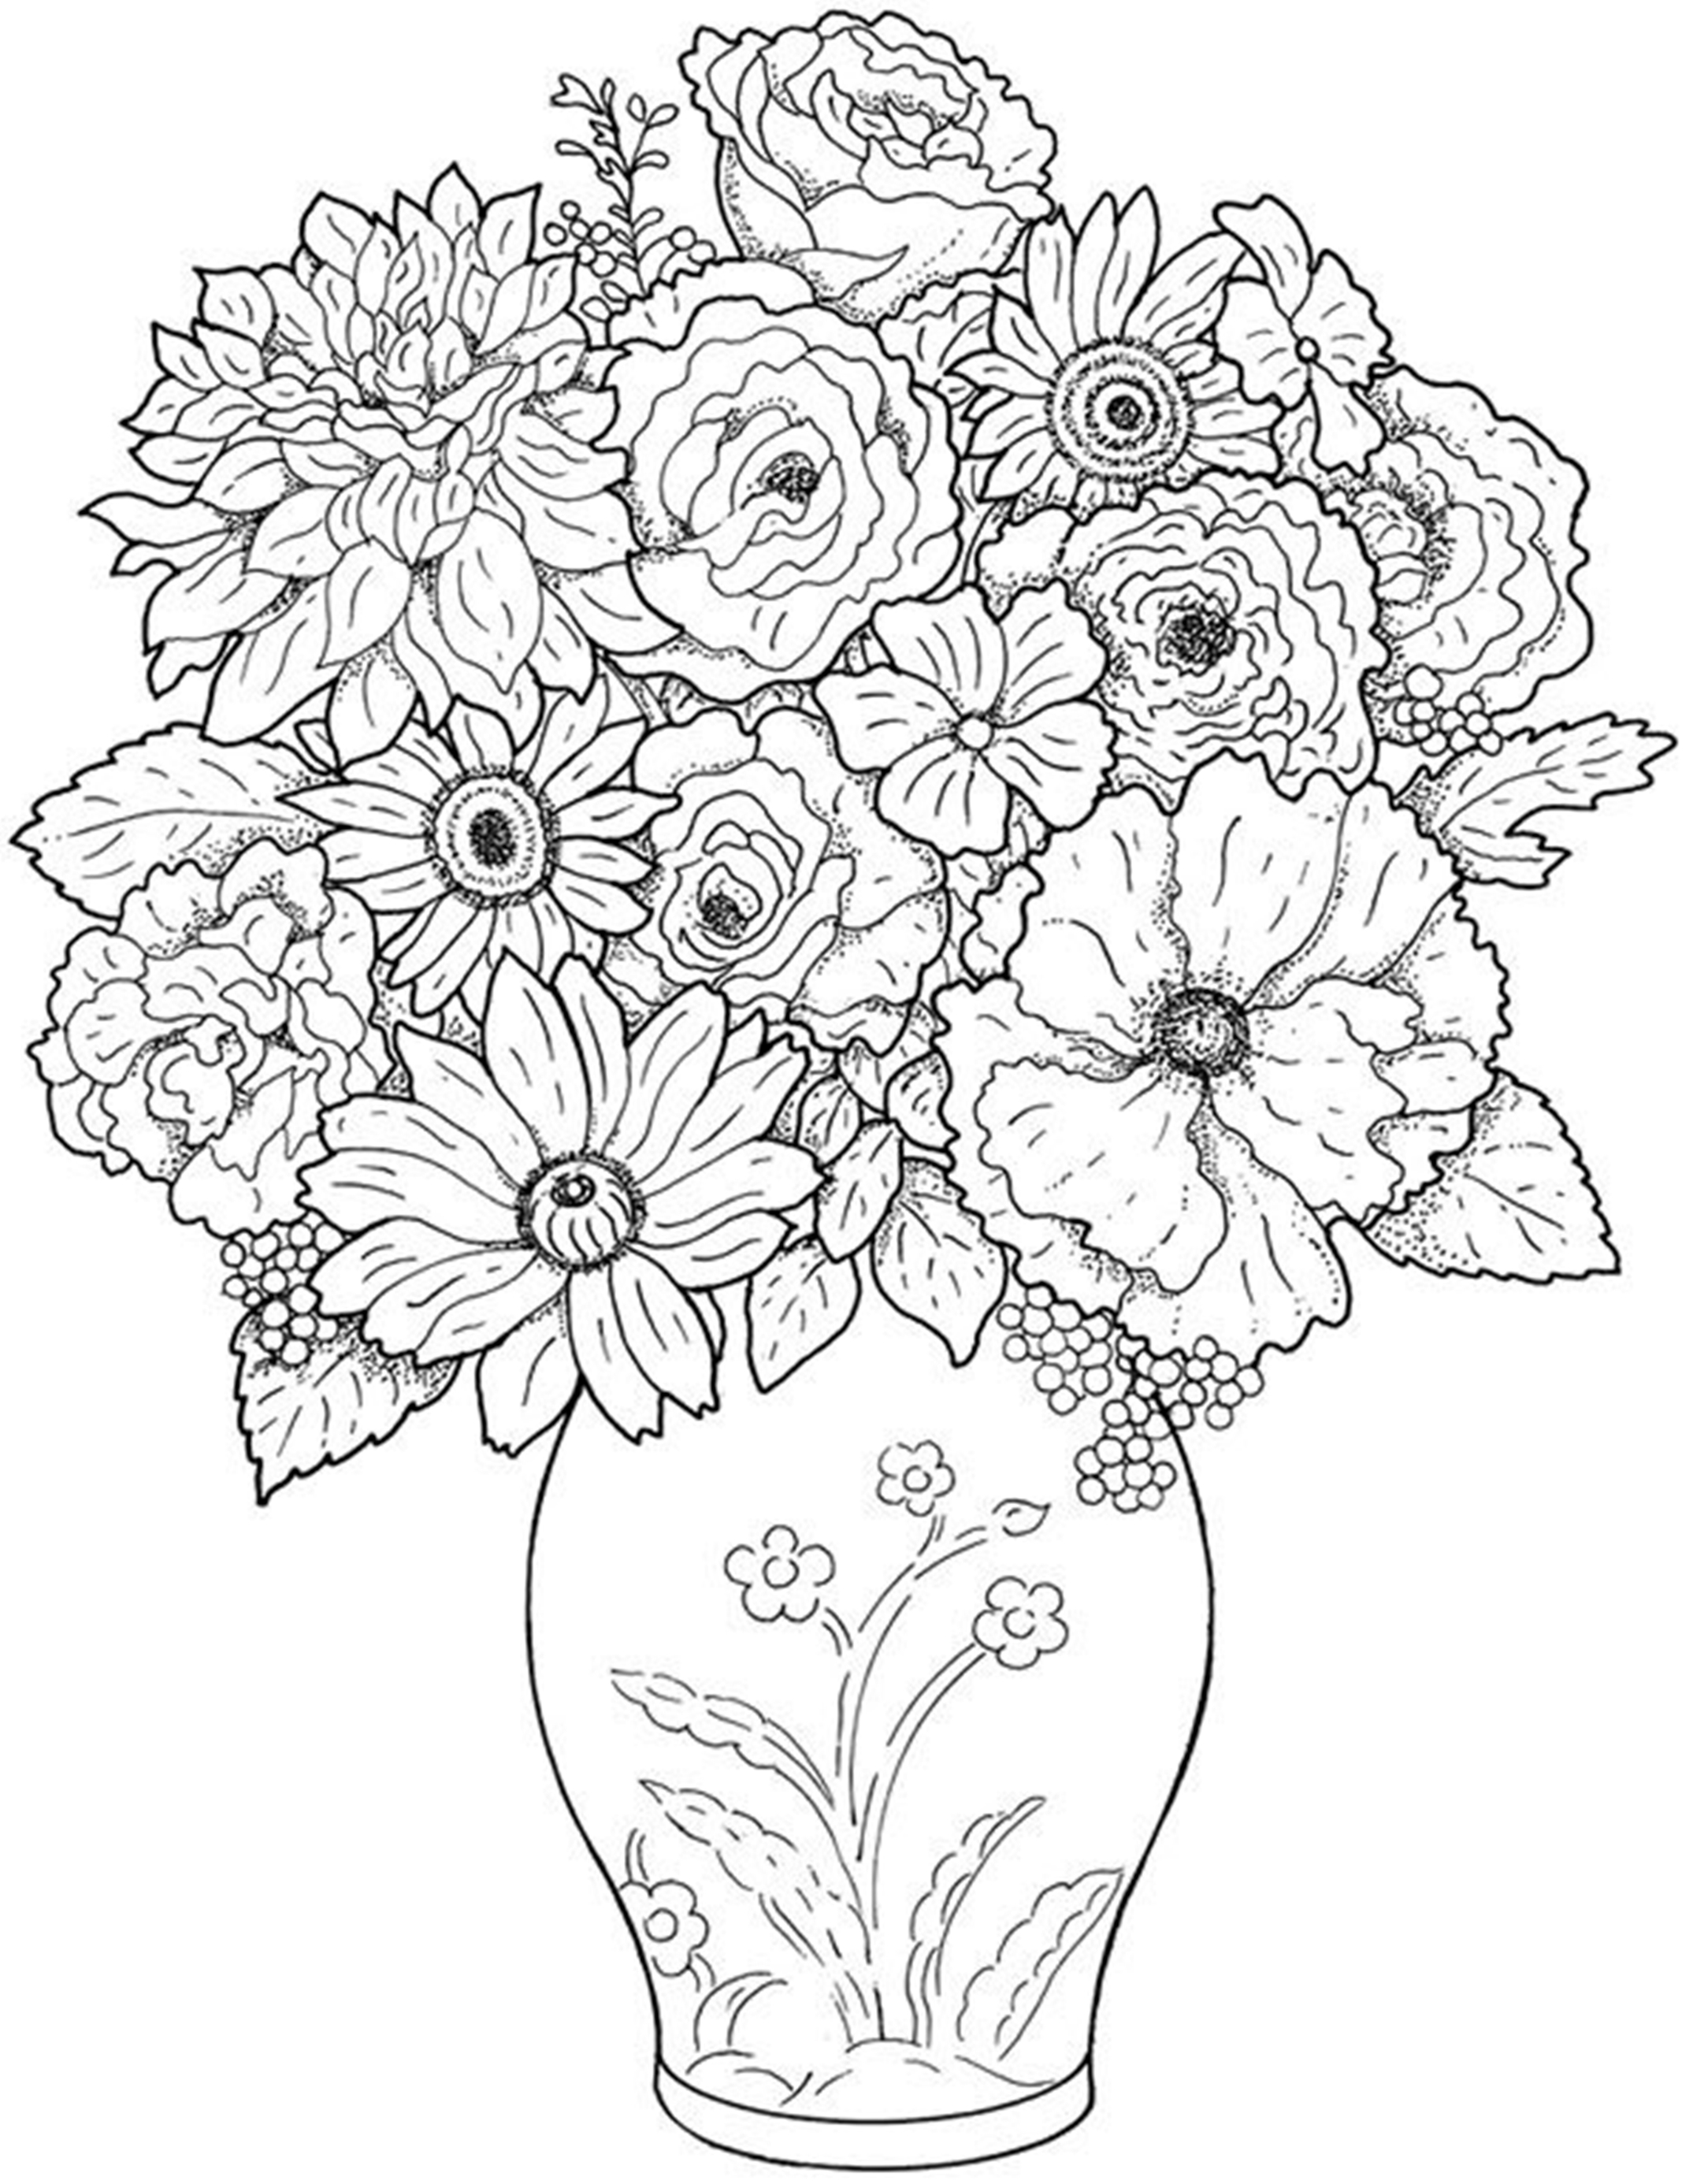 colouring page of flowers free printable hibiscus coloring pages for kids flower flowers of page colouring